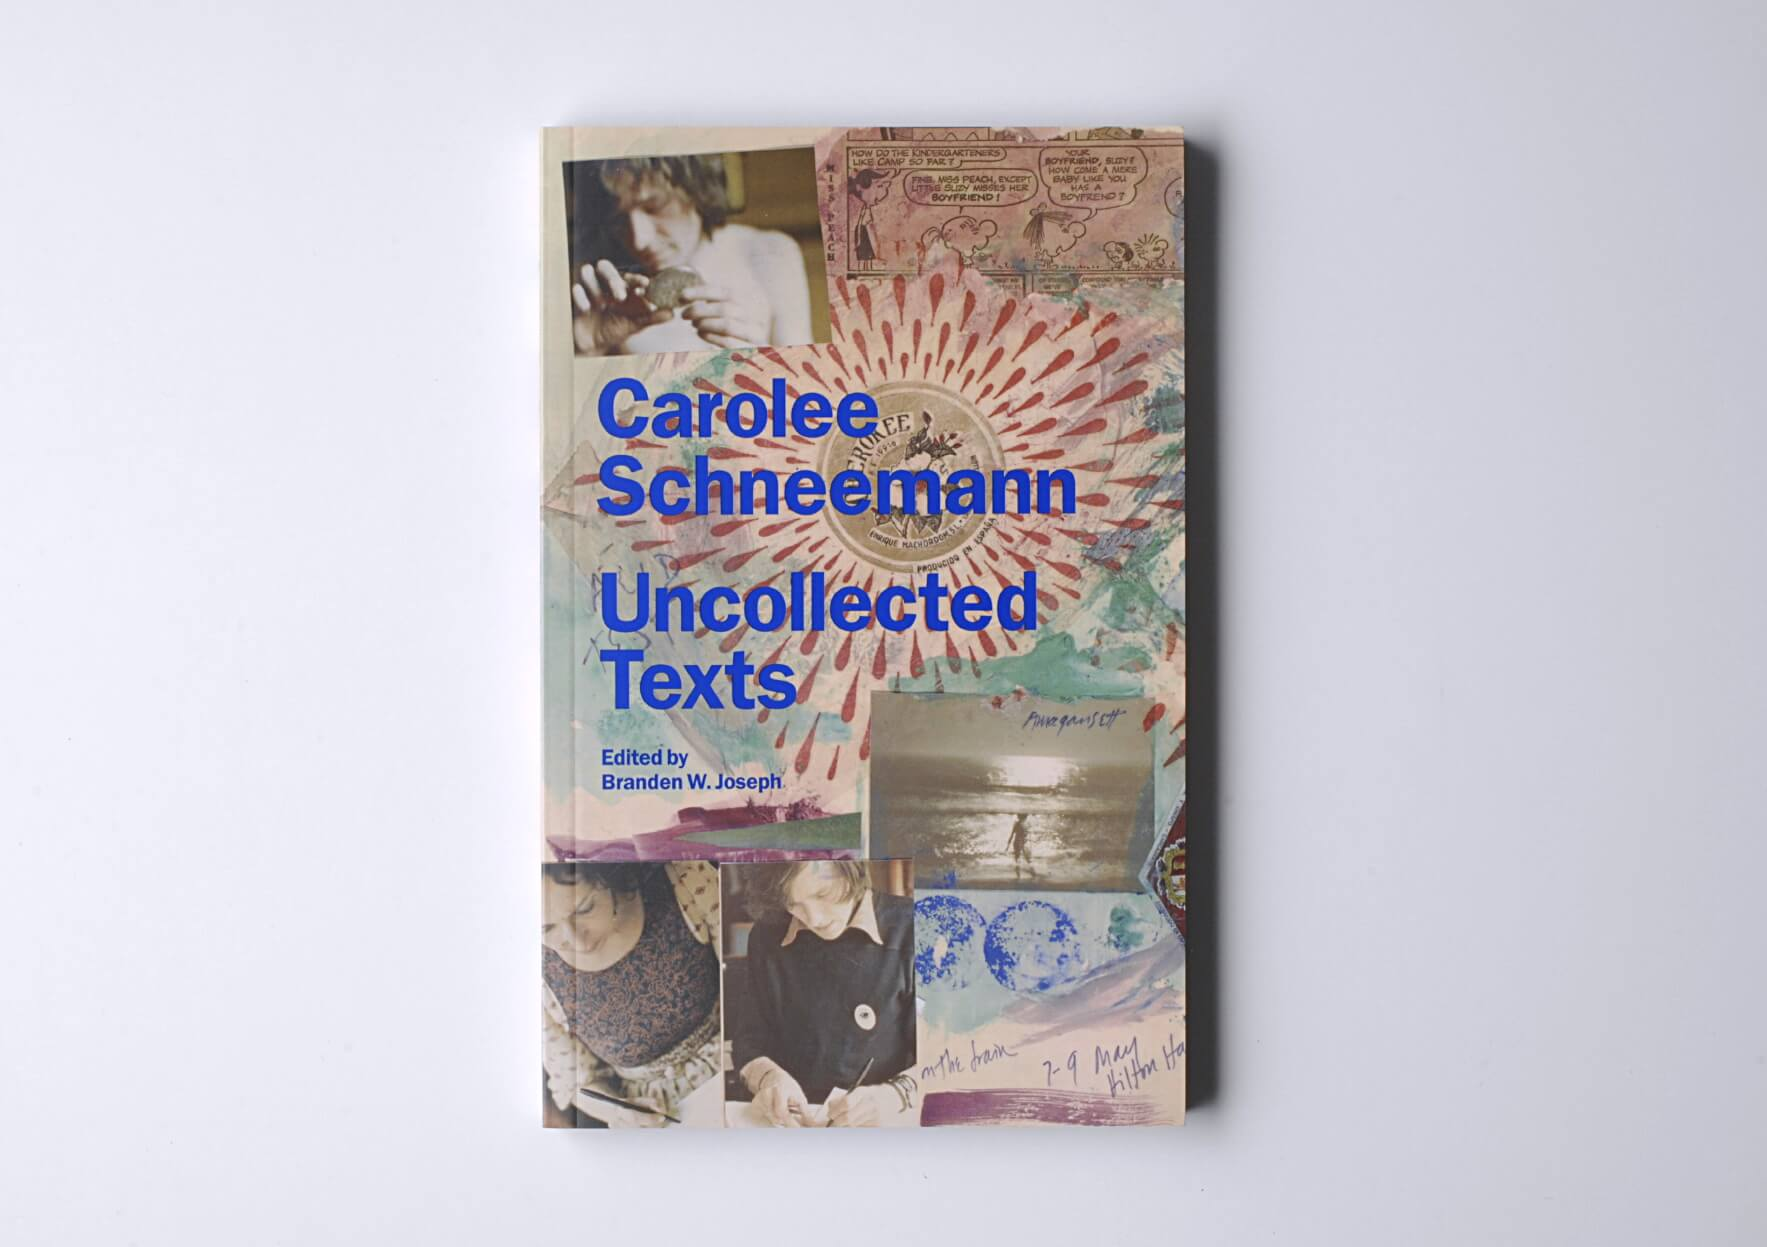 Carolee Schneemann Uncollected Texts, 2018 21 x 14 cm, 164 p. Ed. Primary Information | Mother | ProjecteSD